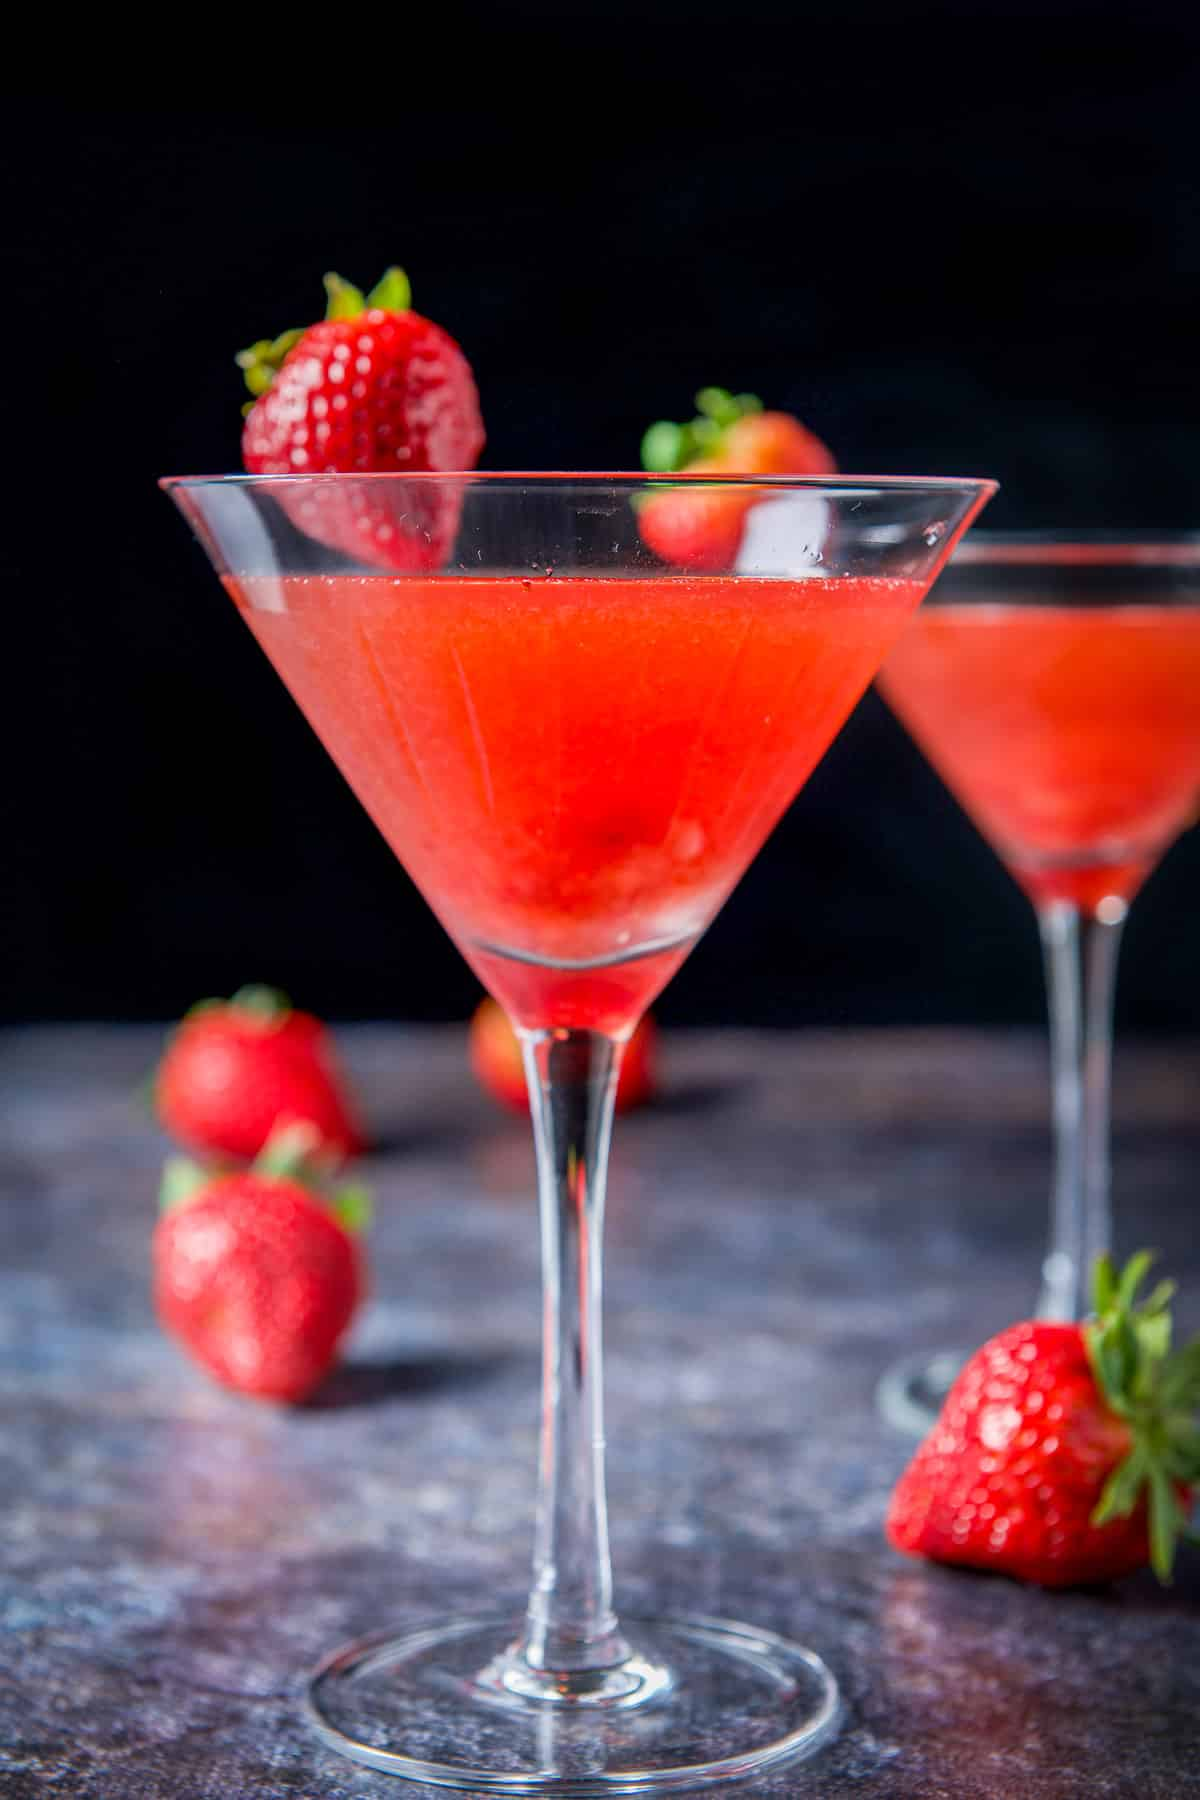 Vertical view of the strawberry cosmos with strawberries on the rims as garnish and table